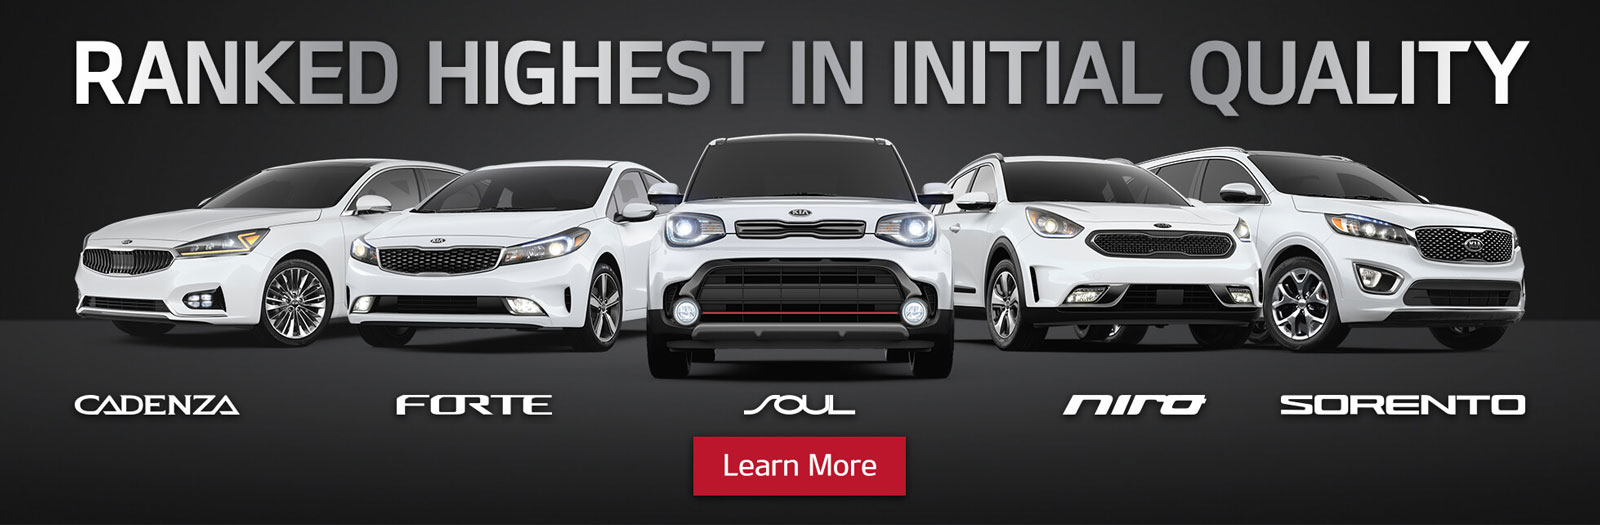 Ranked Highest in Initial Quality Scarboro Kia